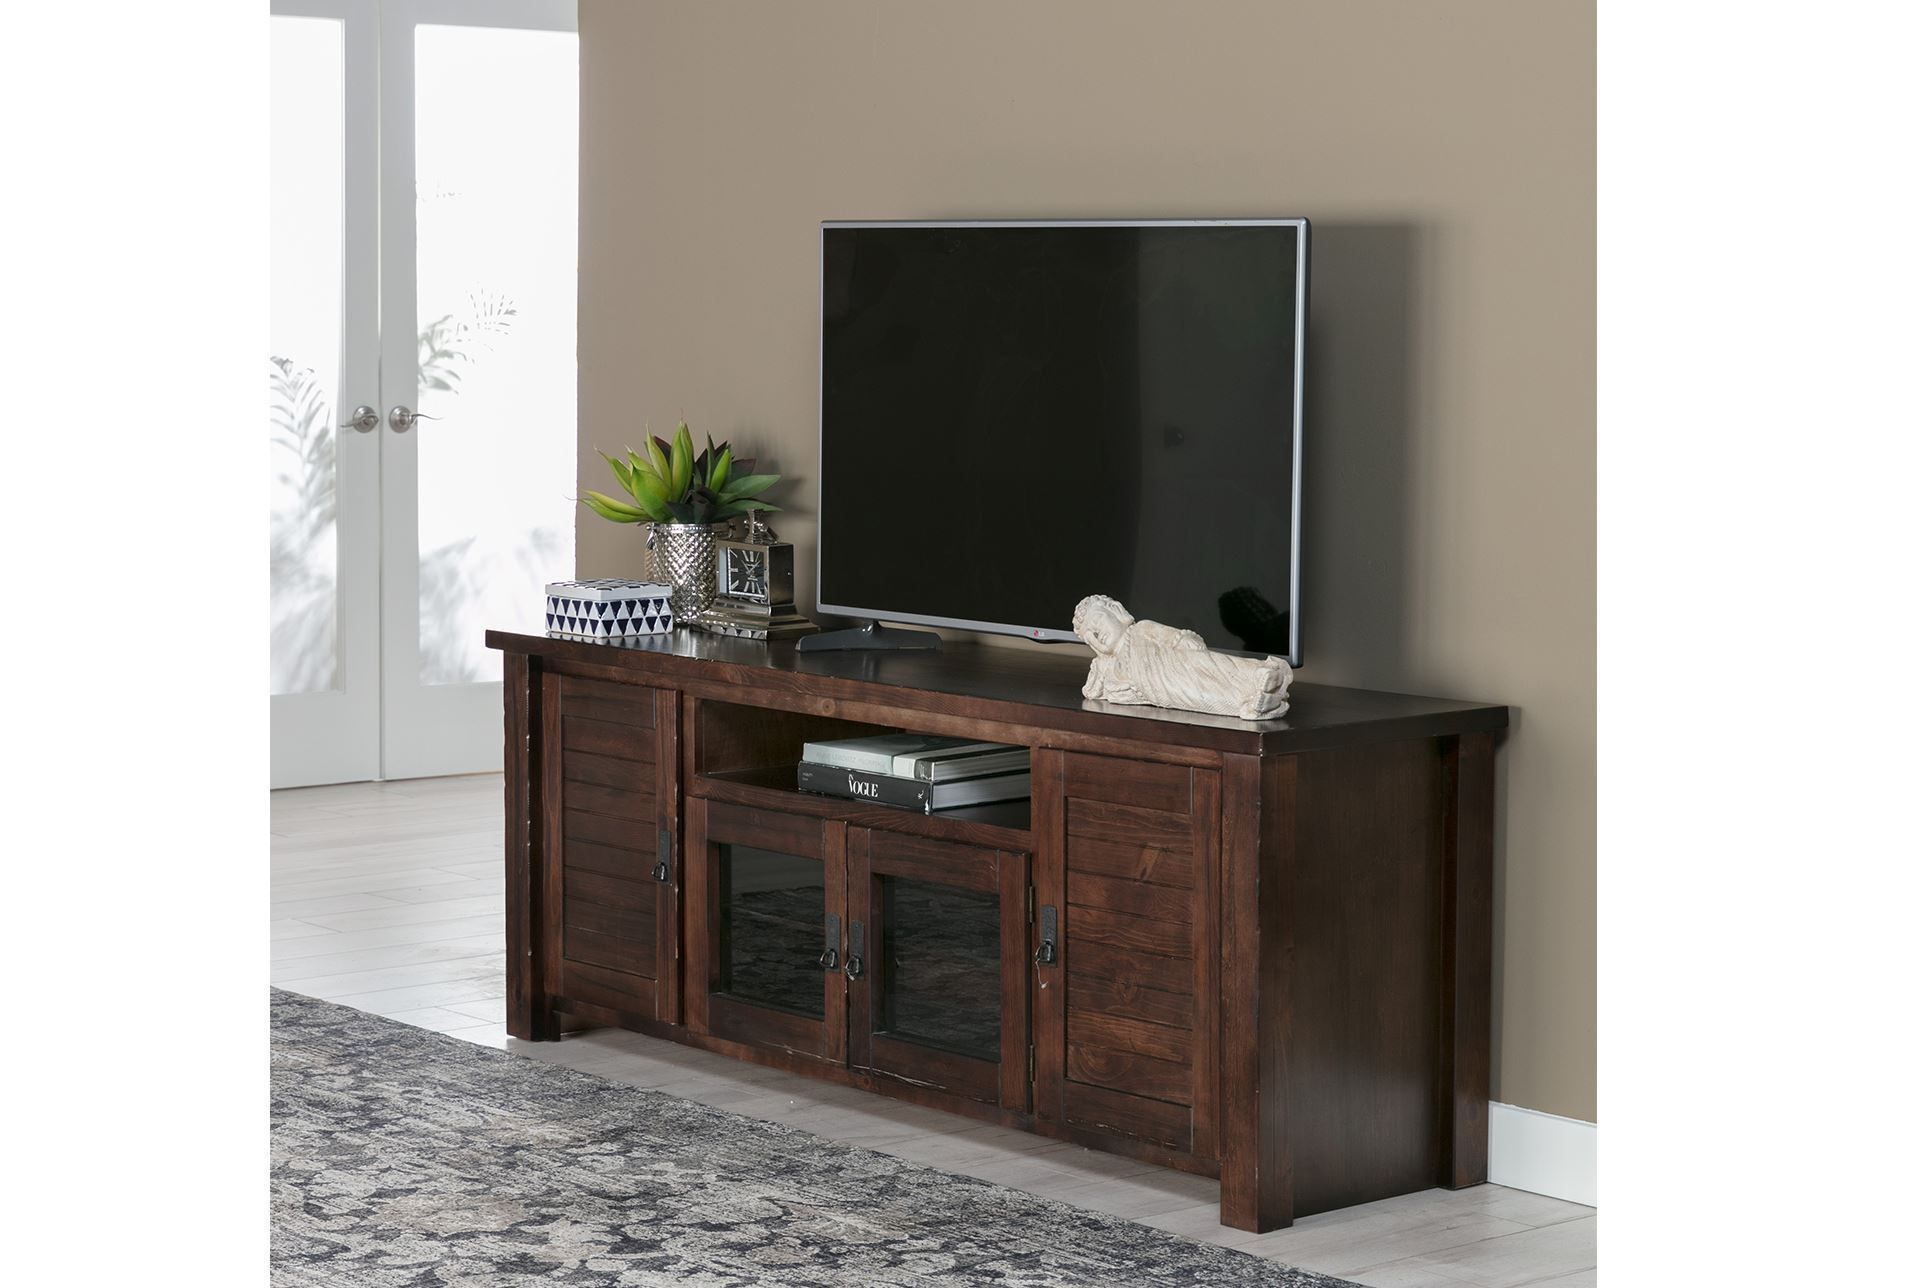 Canyon 74 Inch Tv Stand | For The Home | Pinterest | Home Living for Canyon 74 Inch Tv Stands (Image 4 of 30)